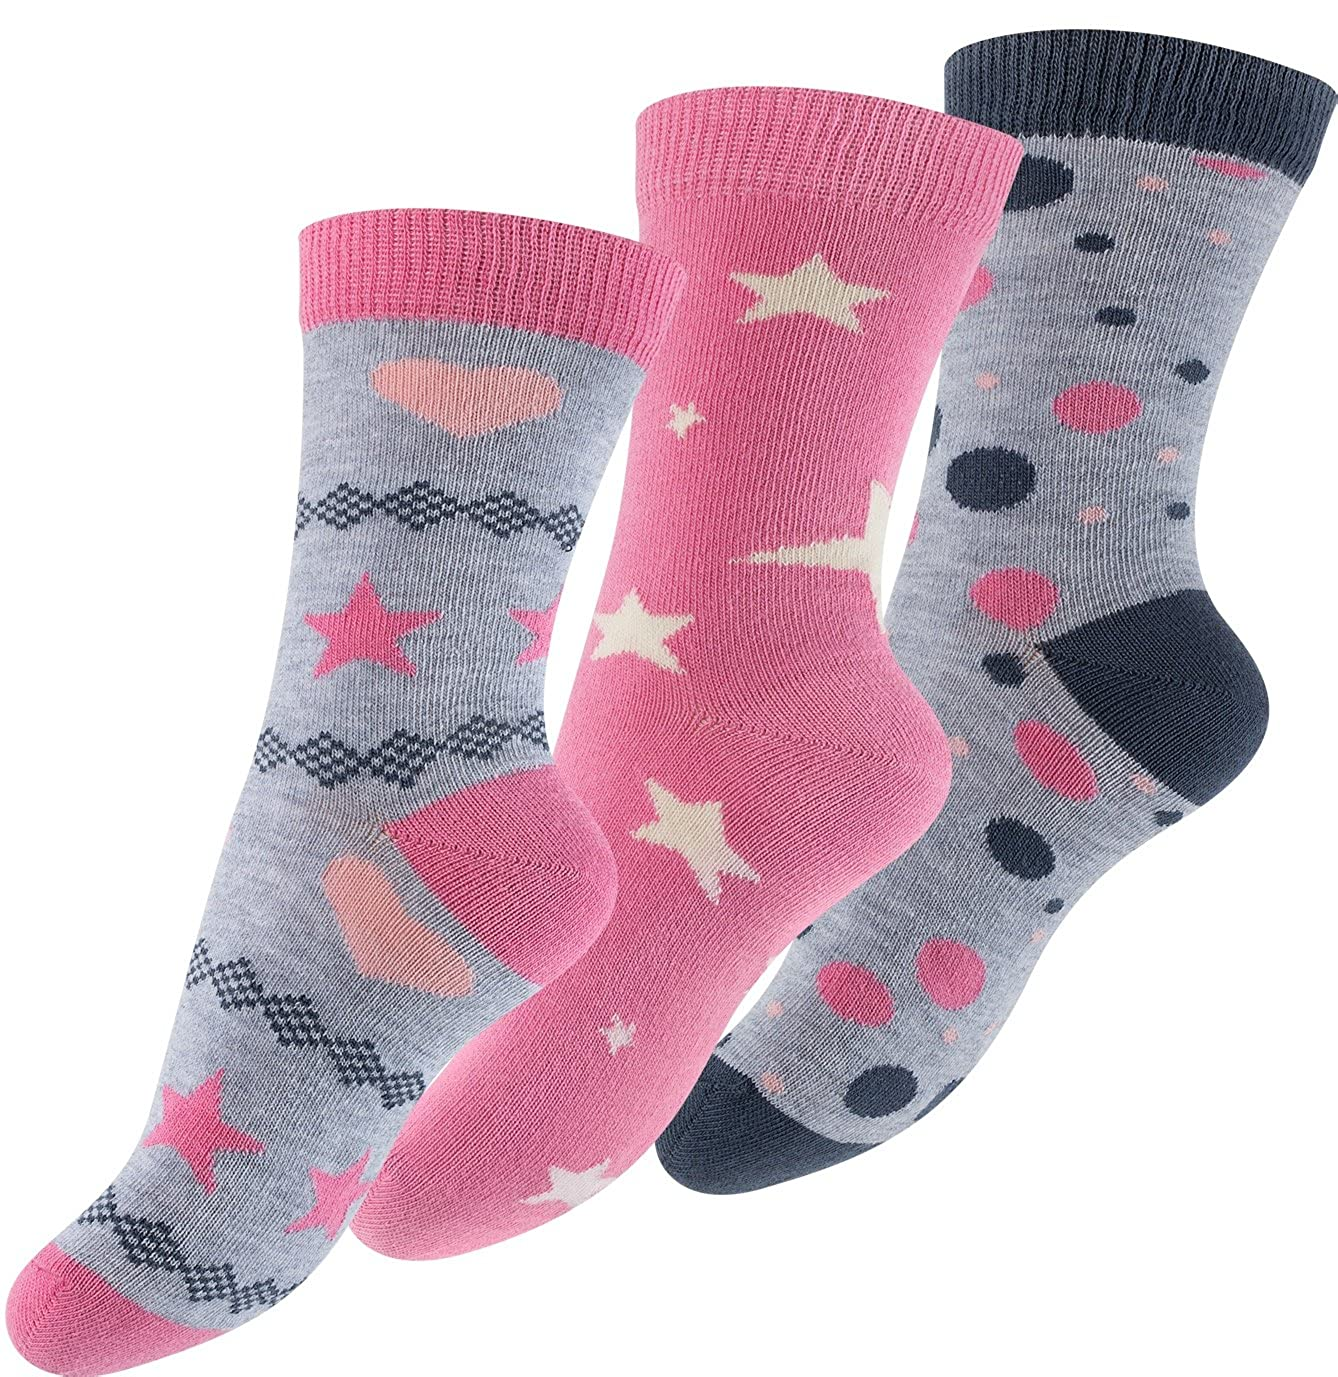 Lot de 6 paires de socquettes pour fille design: Design: ast/érisque fille point coeur -multicolore